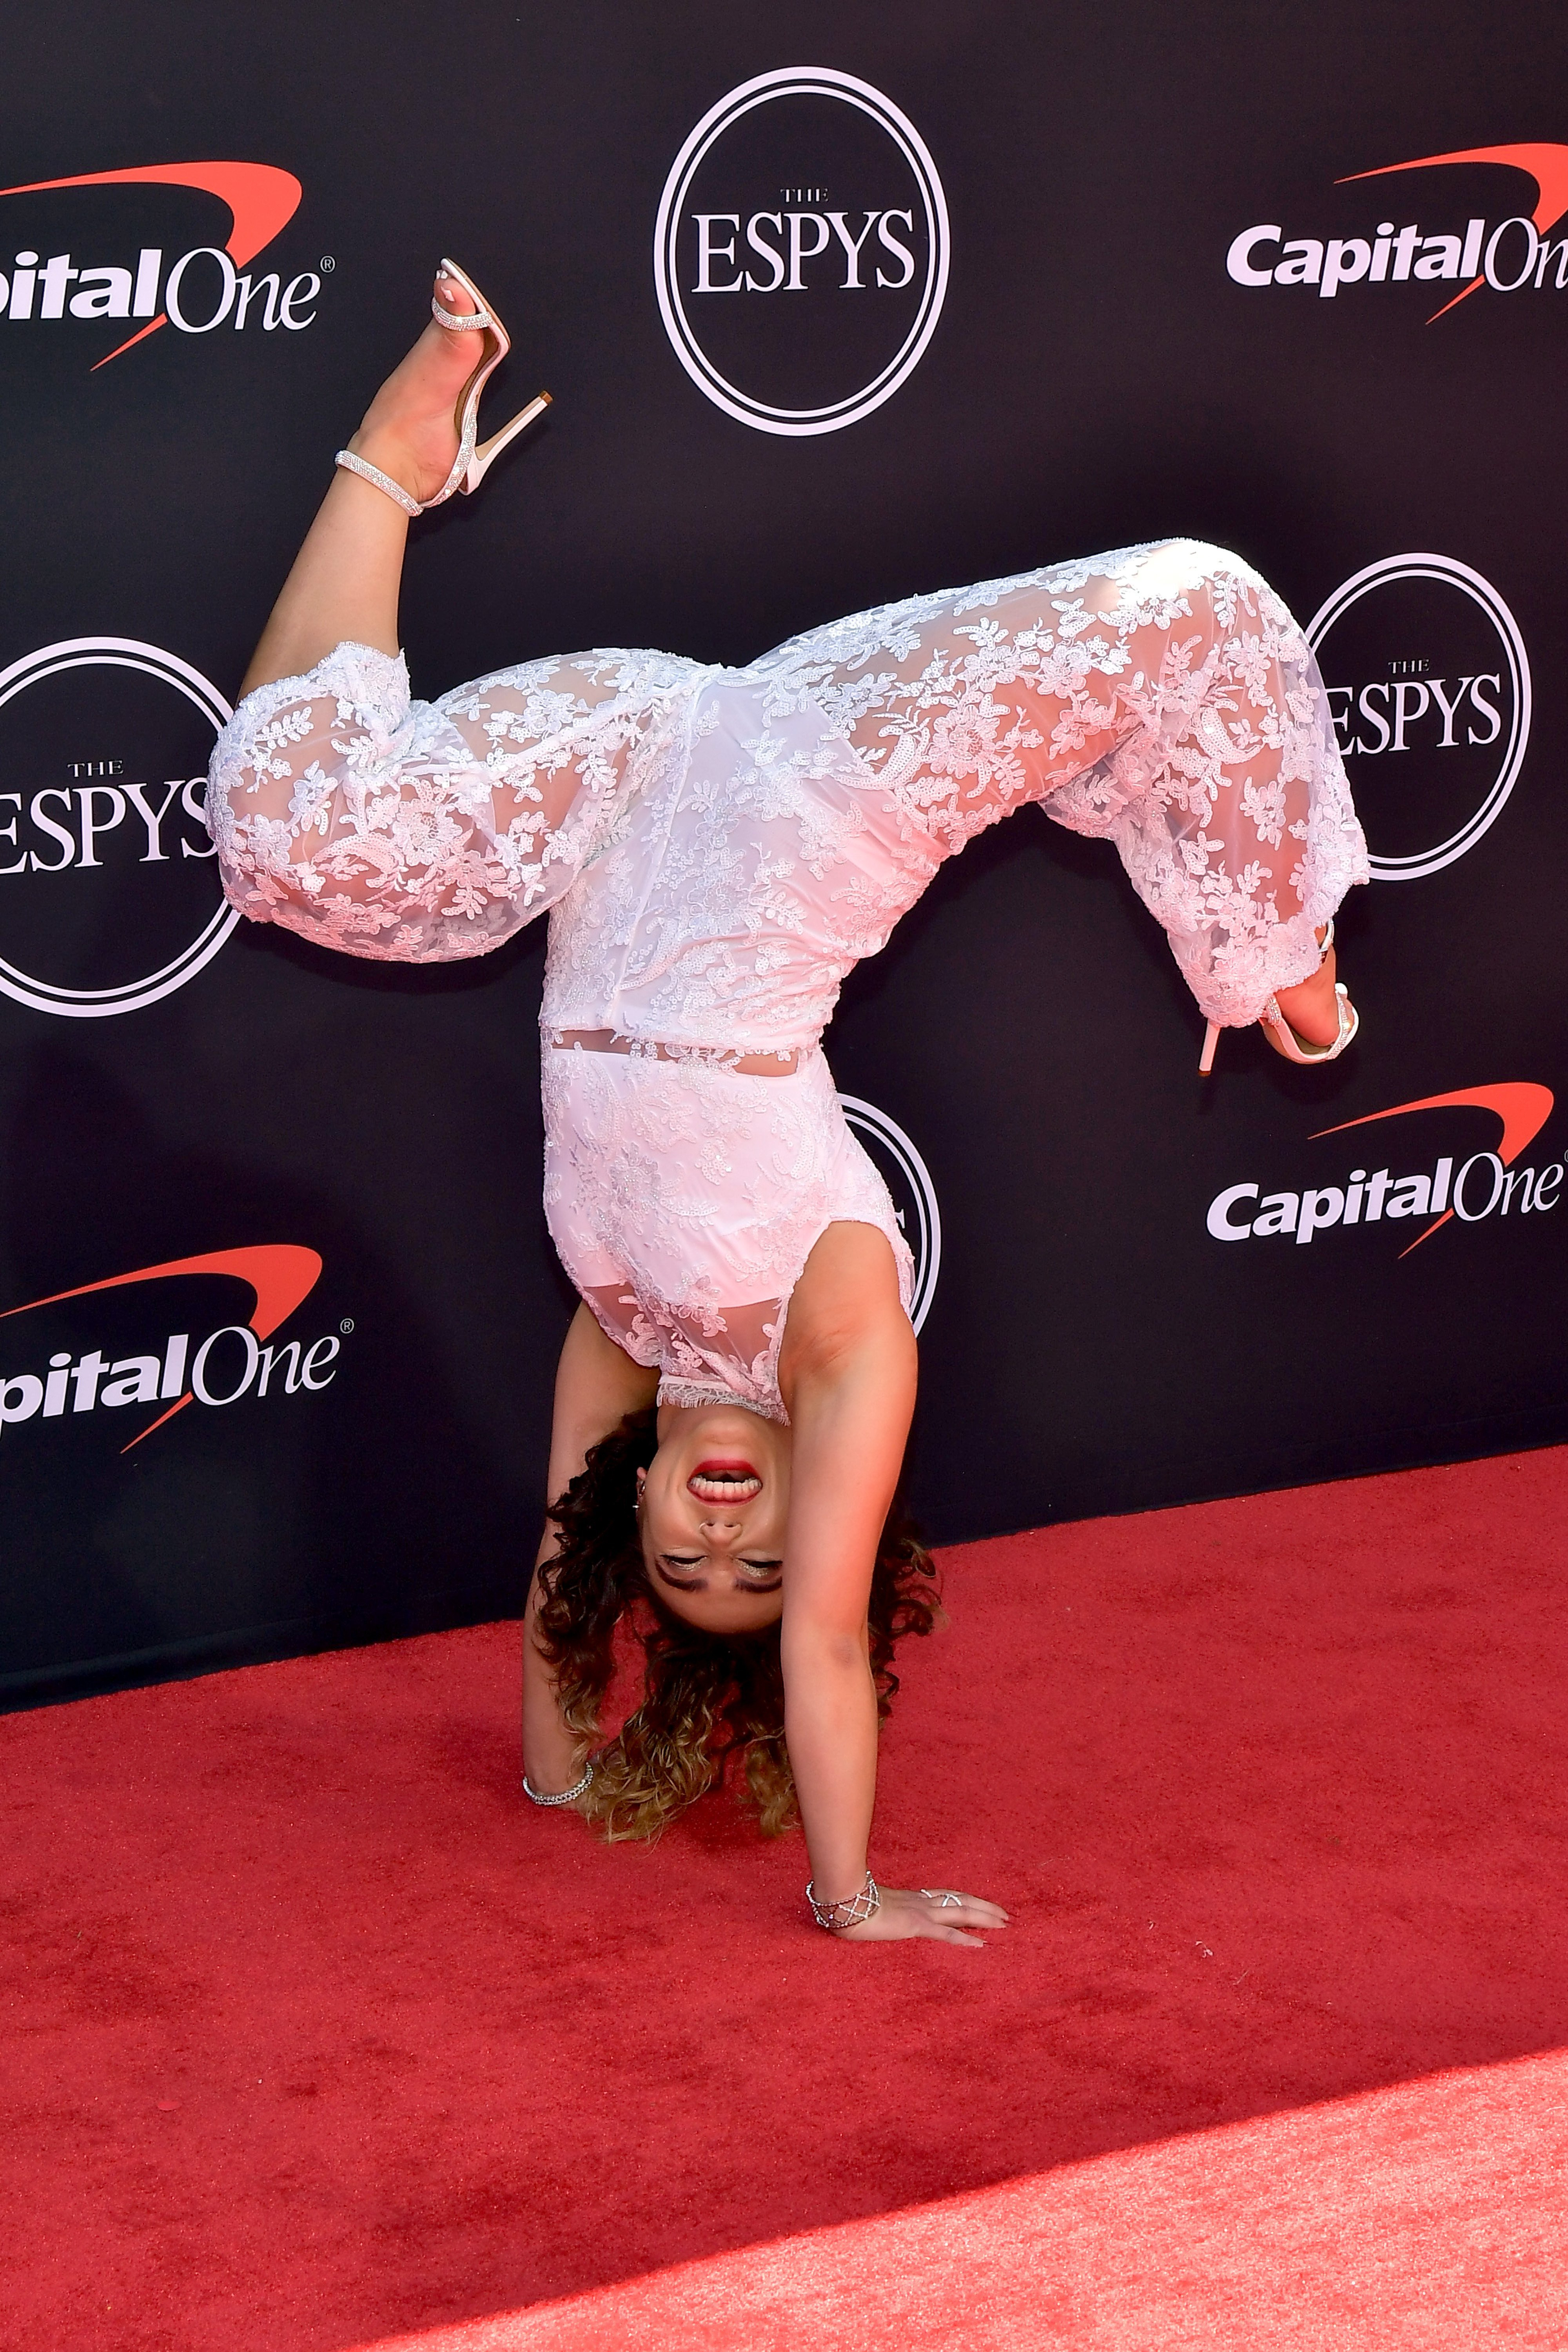 Katelyn Ohashi in her element on the 2019 ESPYs red carpet. | Photo: Getty Images